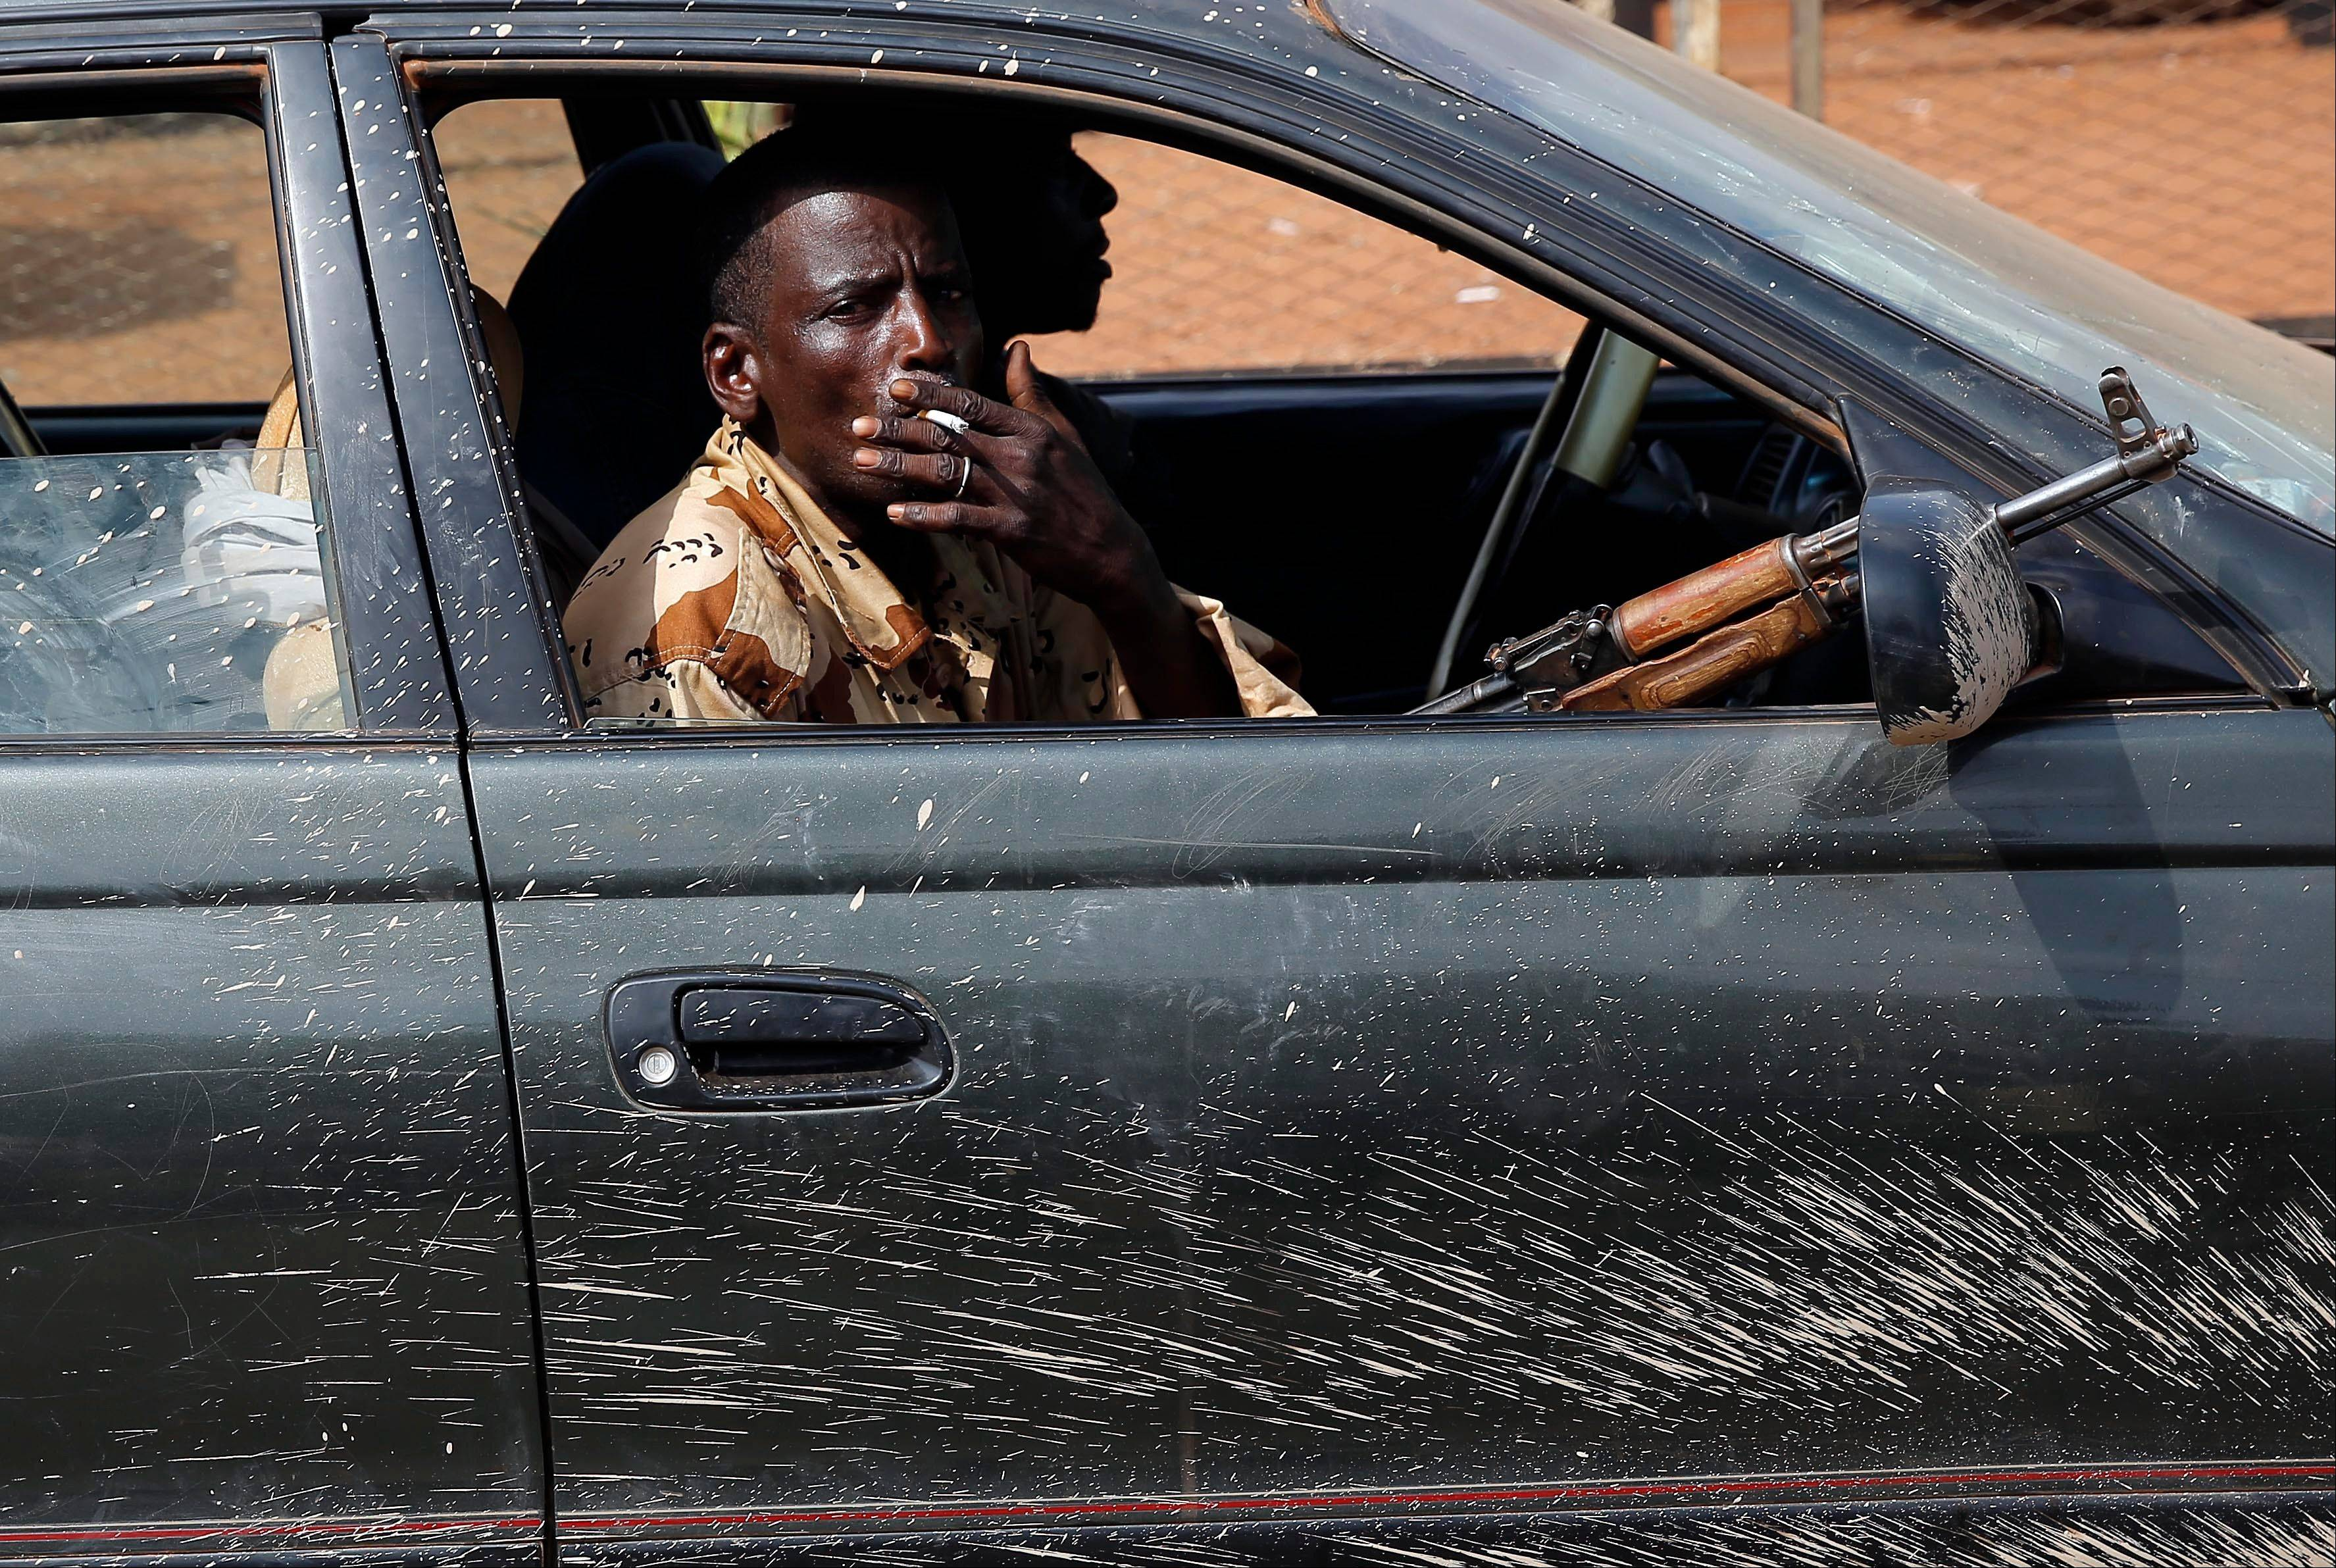 At PK12, the last checkpoint at the exit of the town, armed men drive Friday with thousands of Muslim residents from Bangui and Mbaiki fleeing the Central African Republic capital Bangui in a mass exodus.